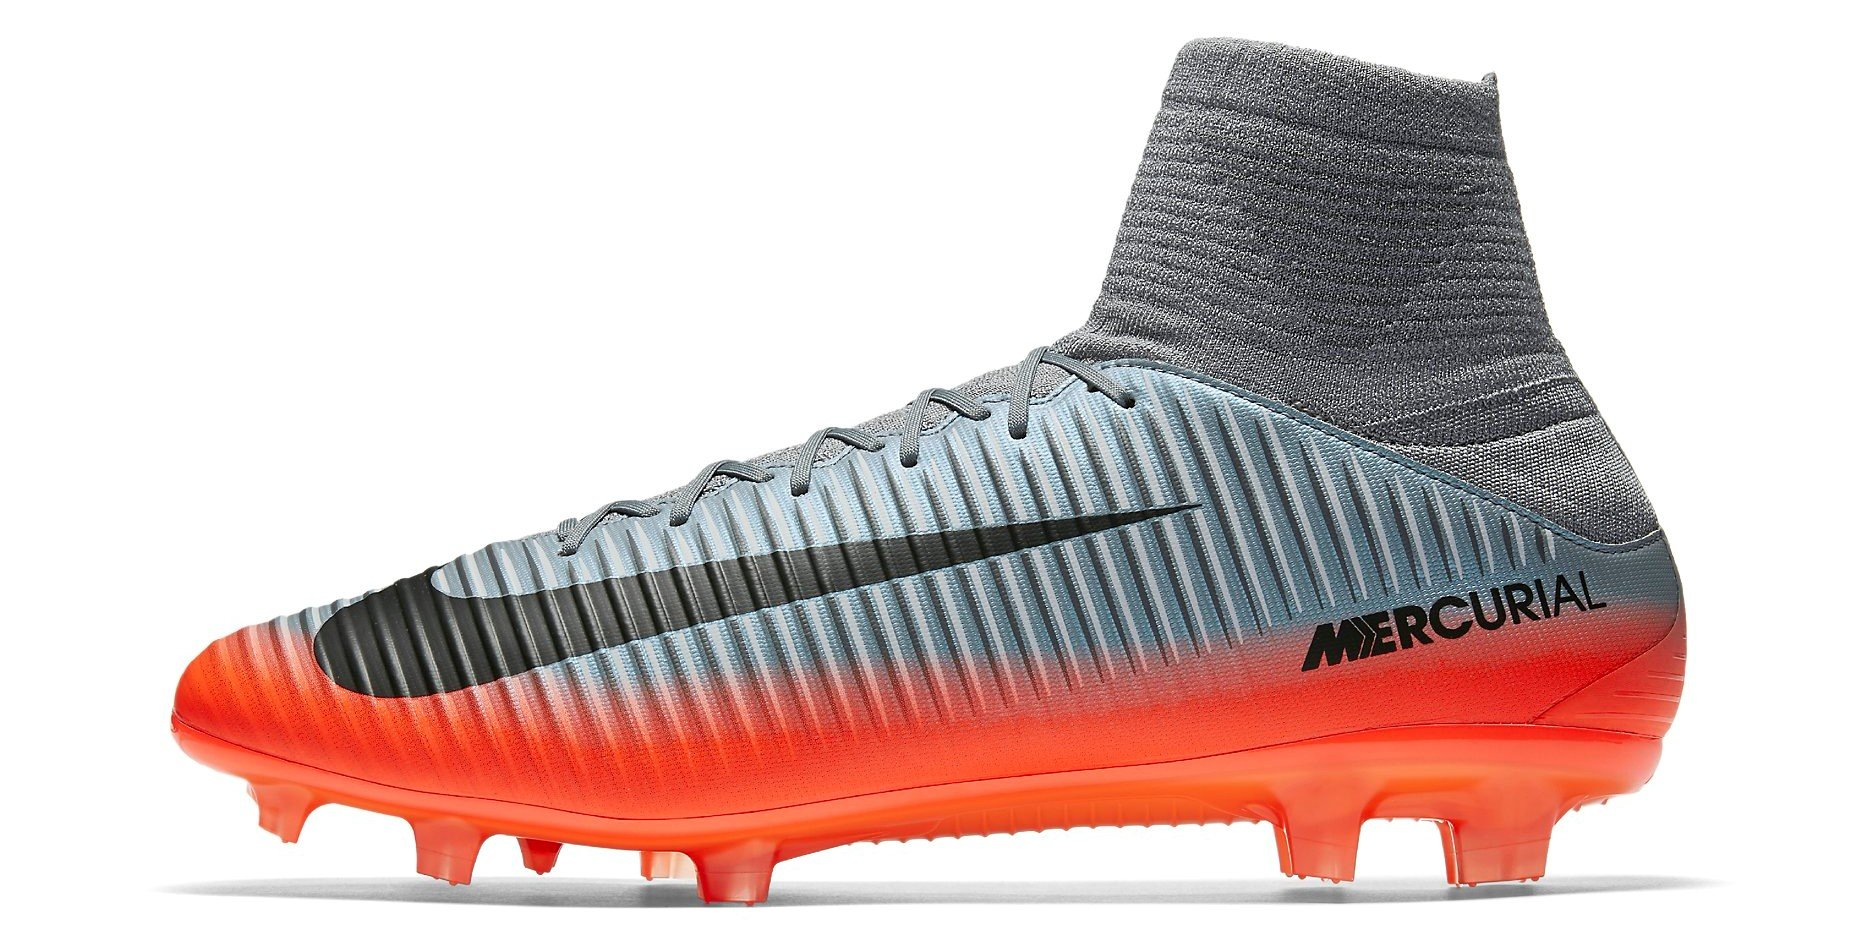 Socialismo oveja arena  Football shoes Nike MERCURIAL VELOCE III DF CR7 FG - Top4Football.com